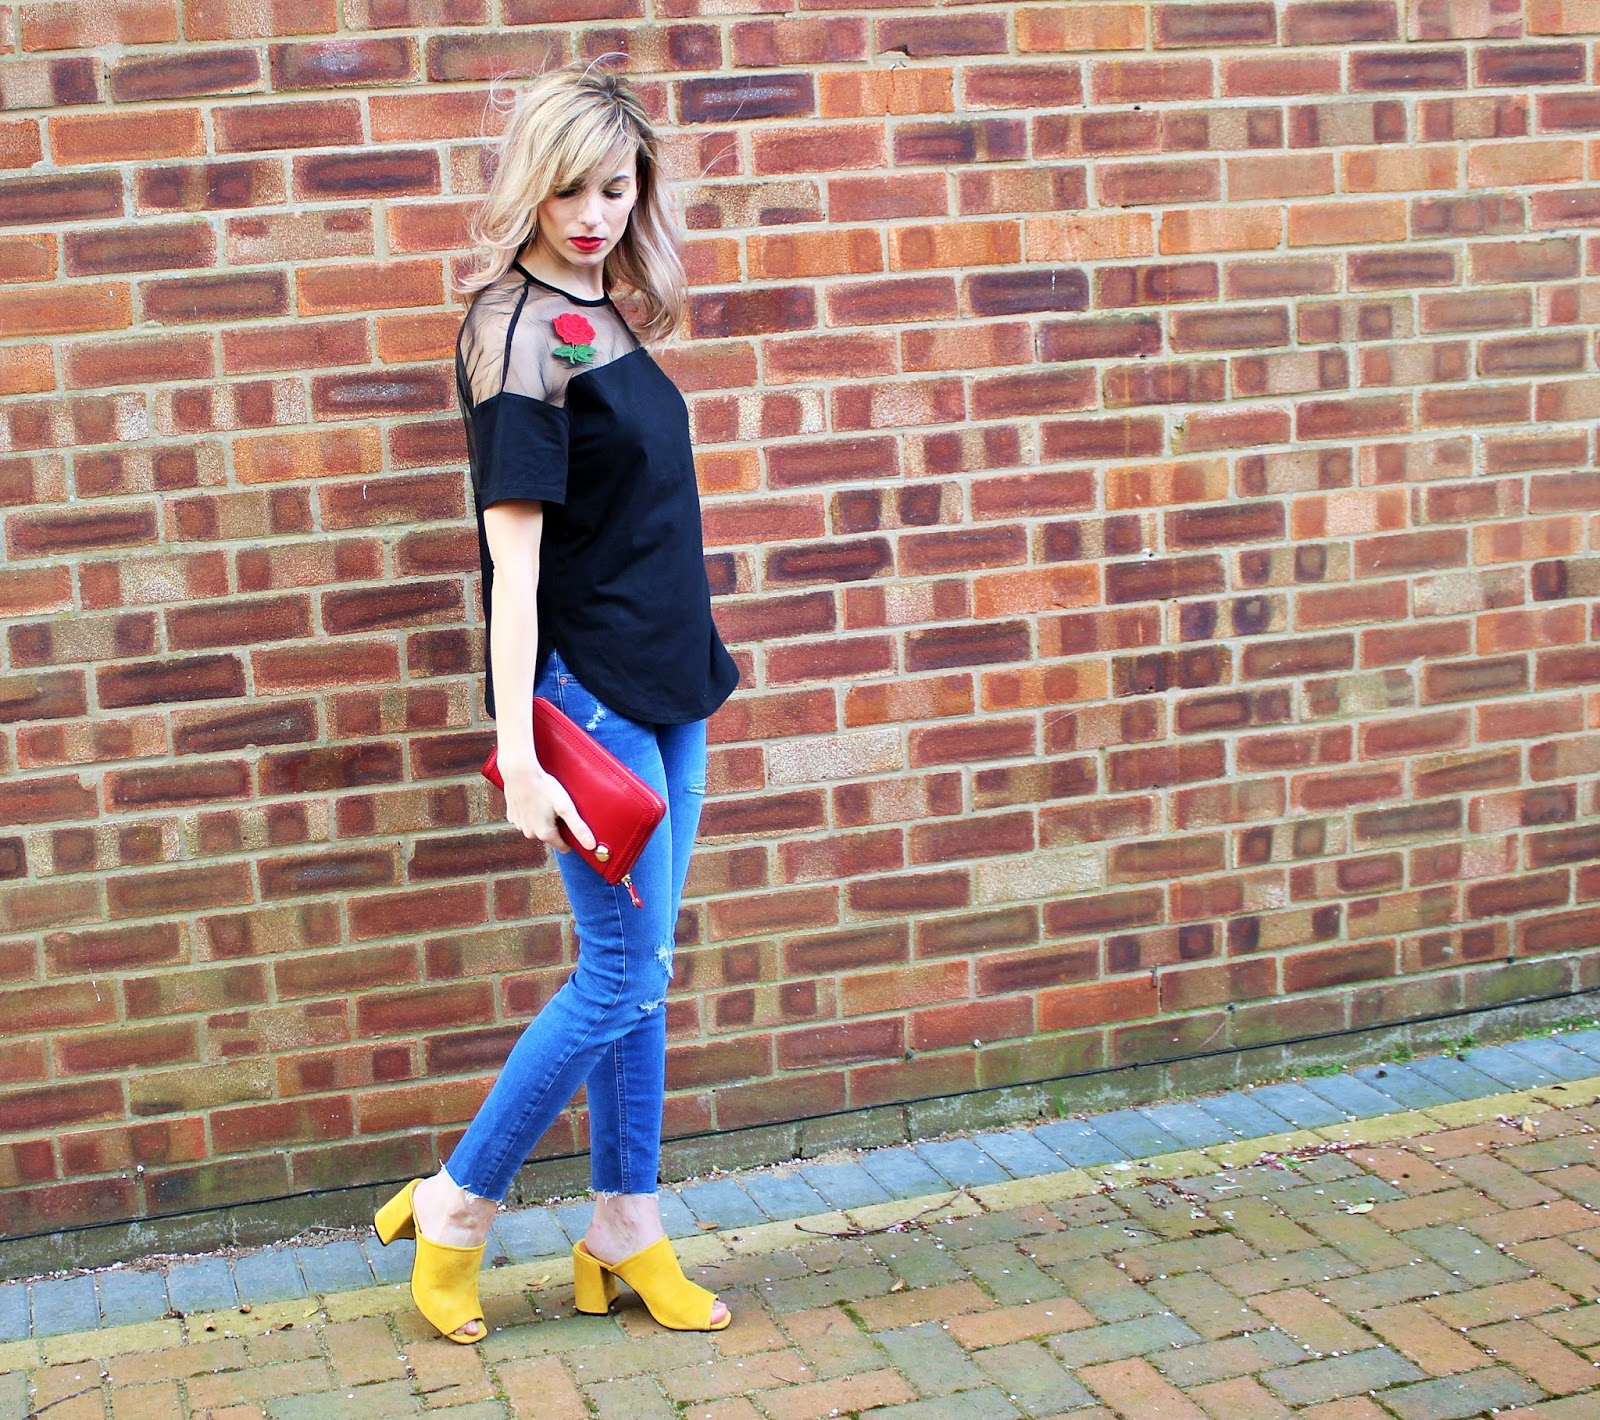 Colourful OOTD featuring embroidery, raw hem jeans and yellow mules - 4